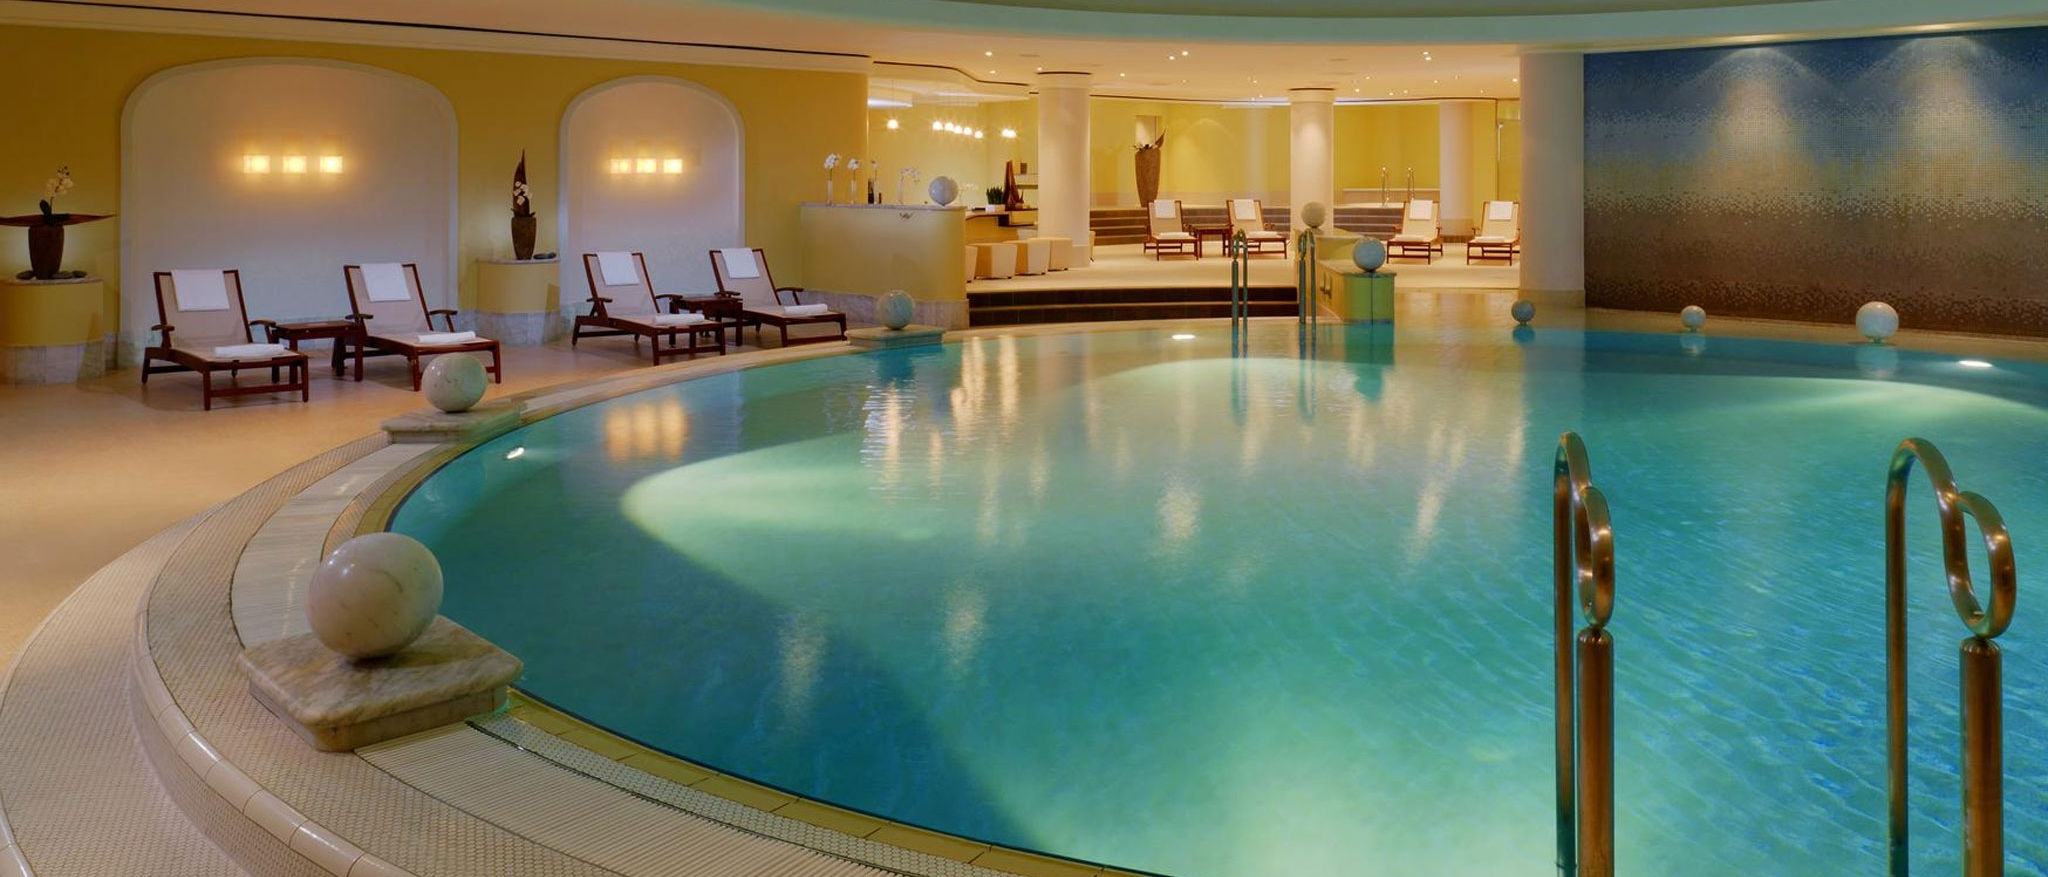 Heated indoor pool at The Westin Grand wellness hotel in Berlin